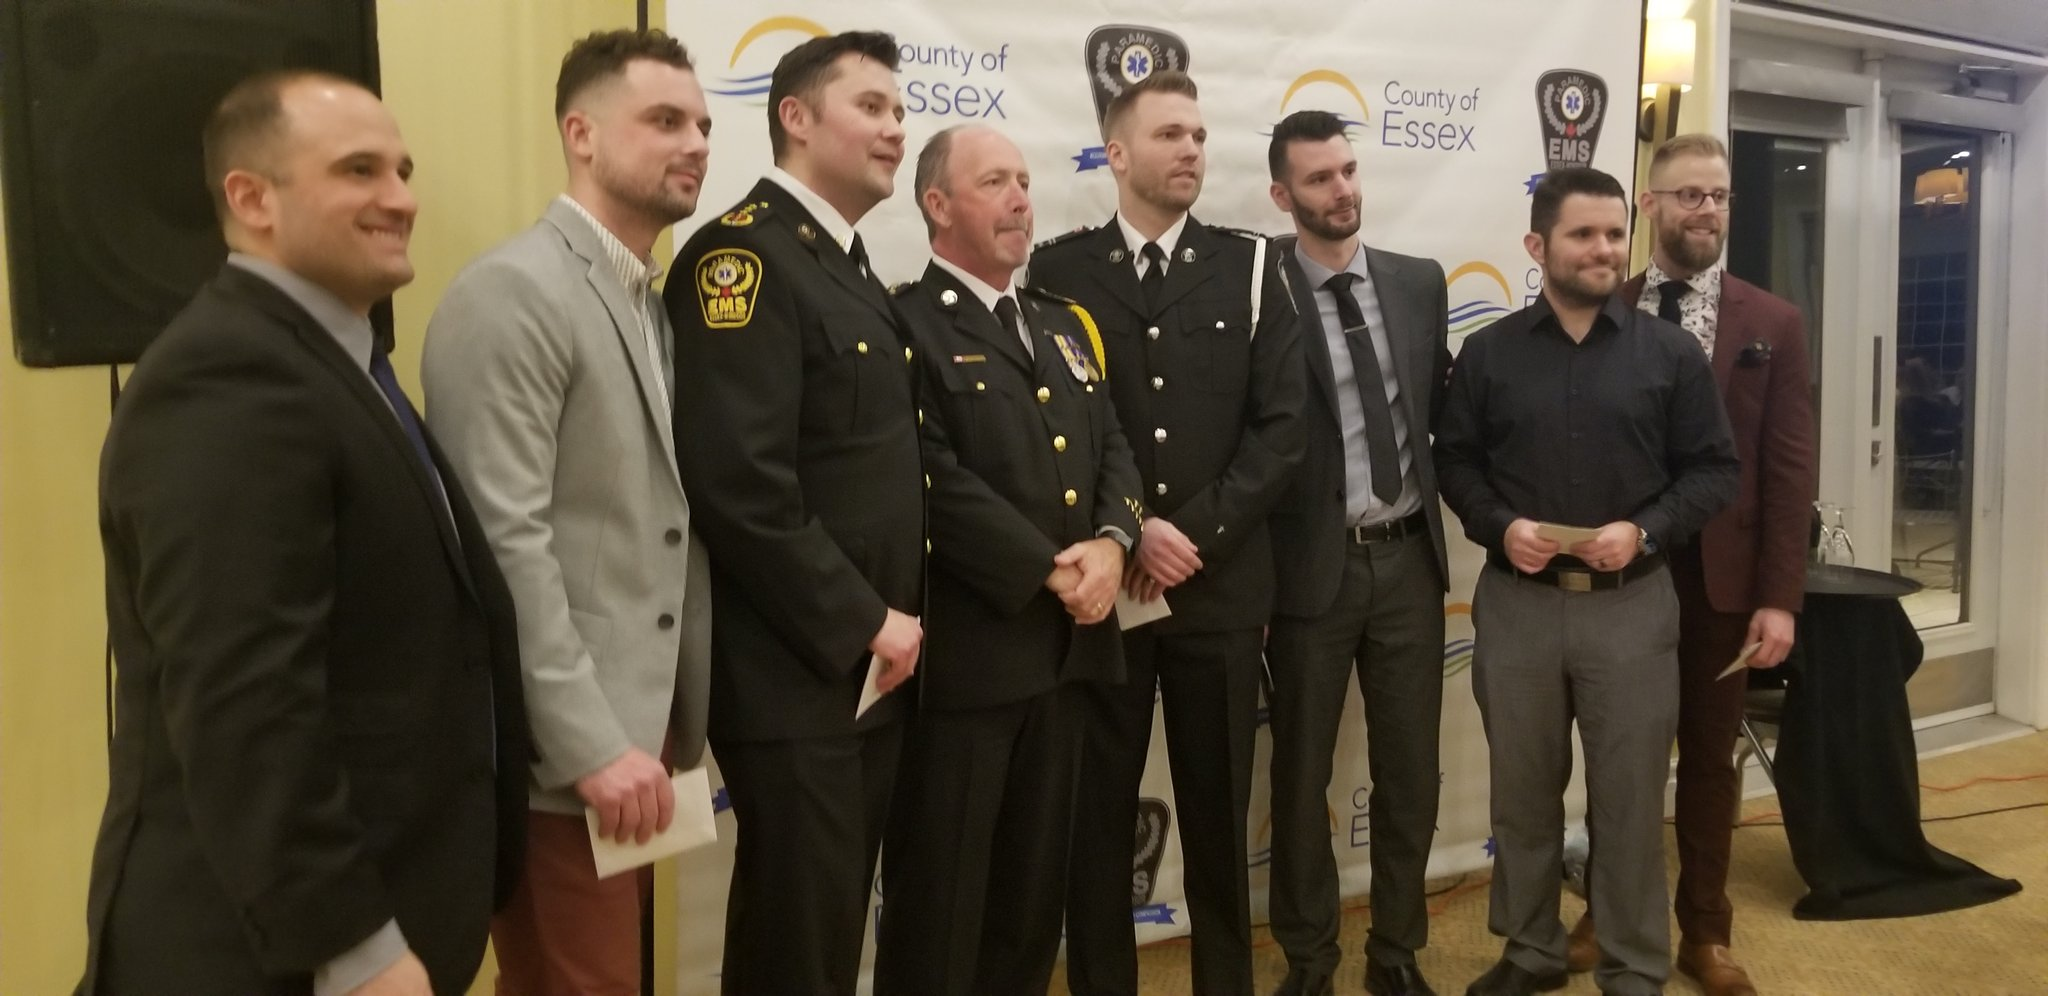 Paramedics being honoured at an awards ceremony.